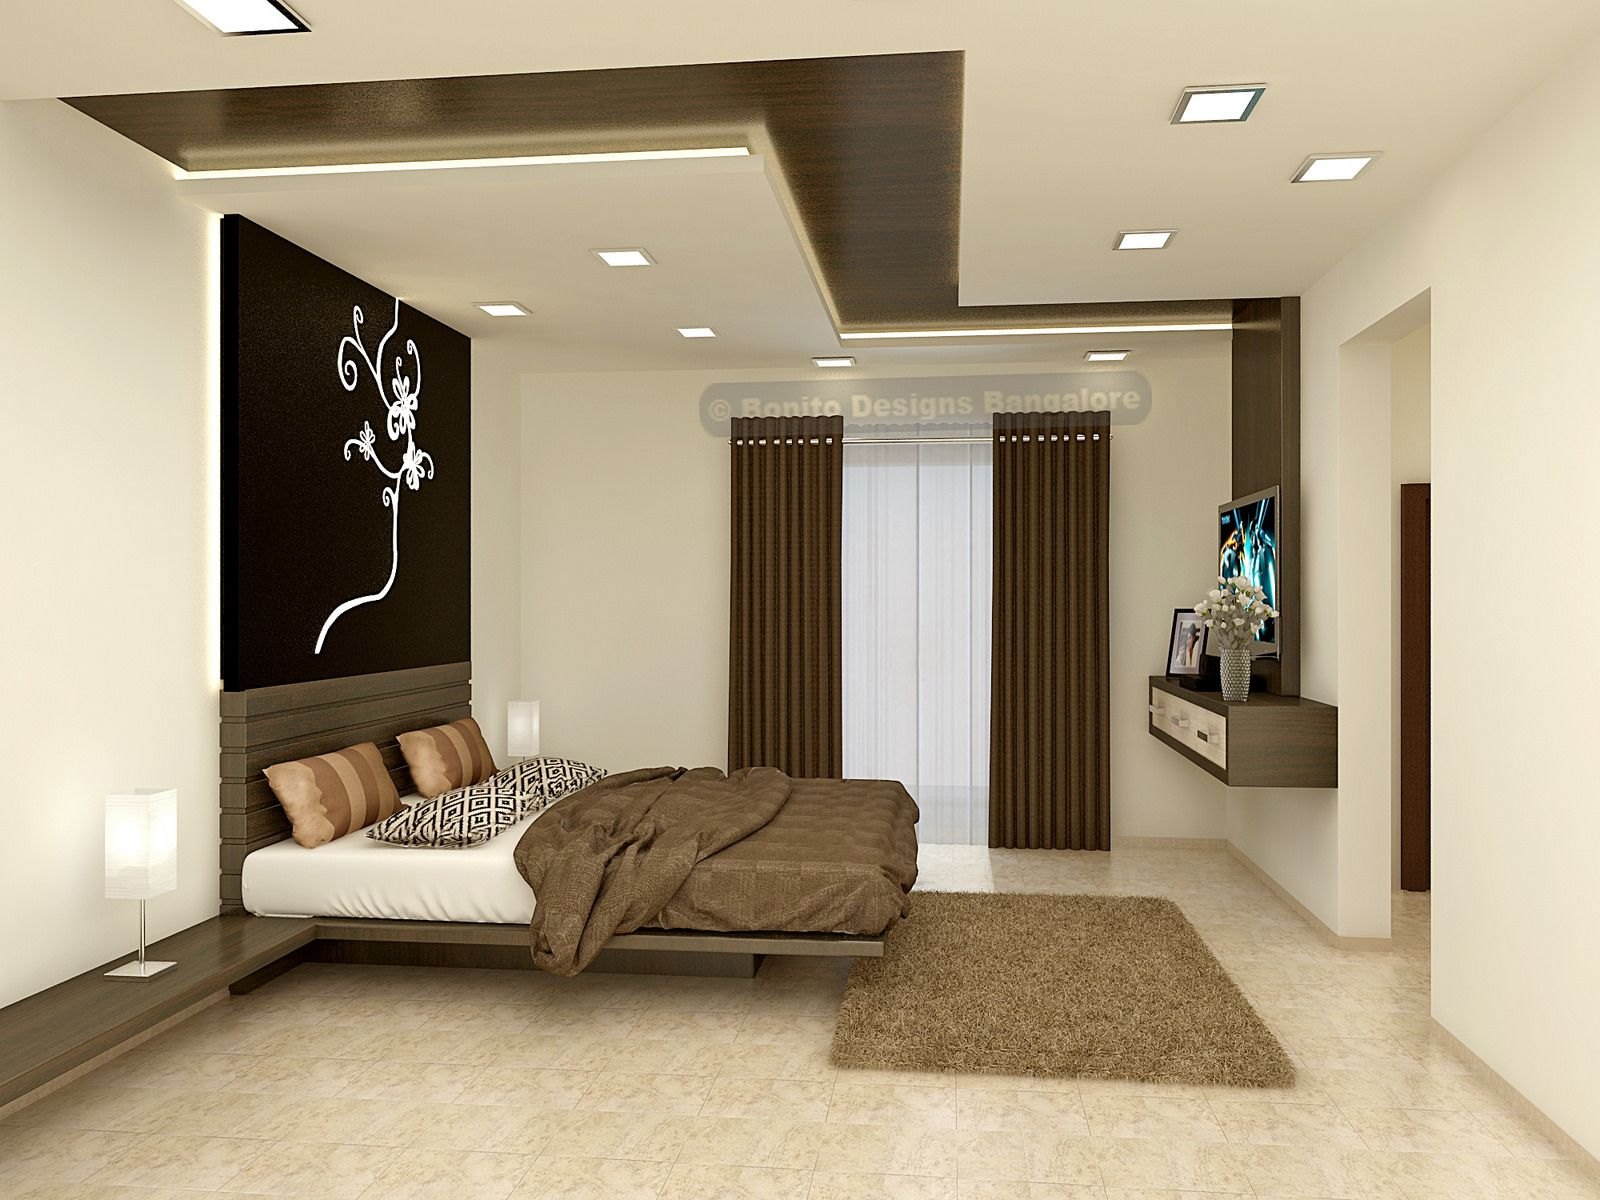 Sandepmbr 1 Ceilings Pinterest False Ceiling Design Ceiling